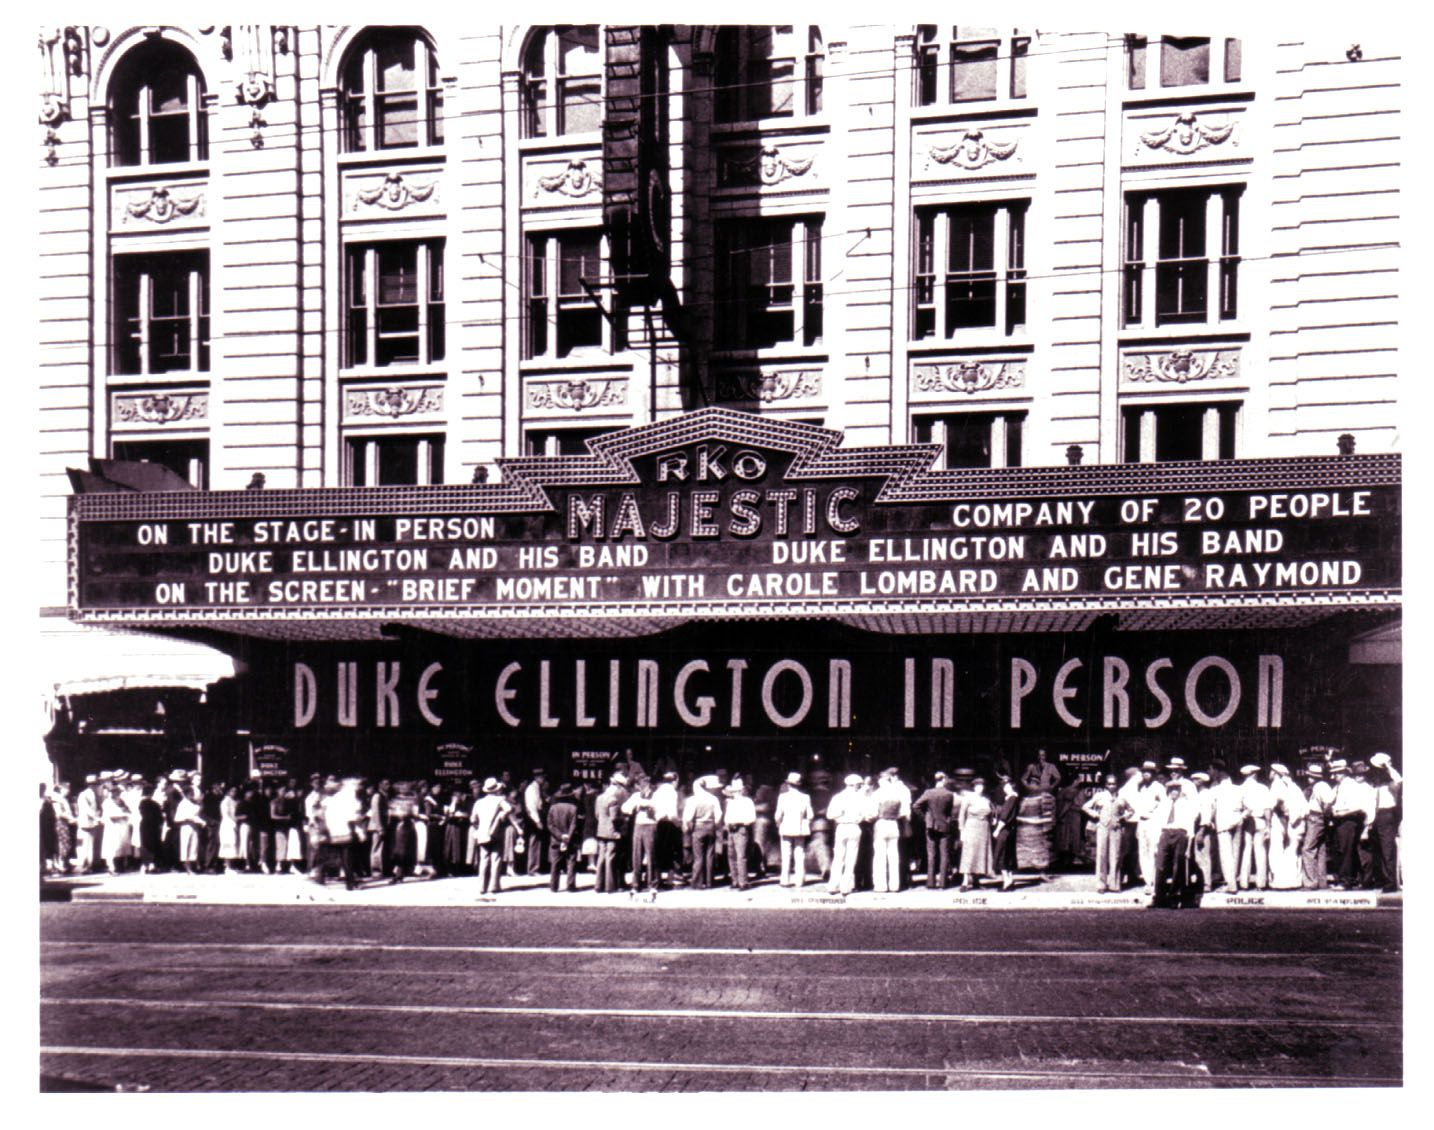 Crowds of people stand outside the theater in 1933, as the marquee advertises a visit from Duke Ellington.